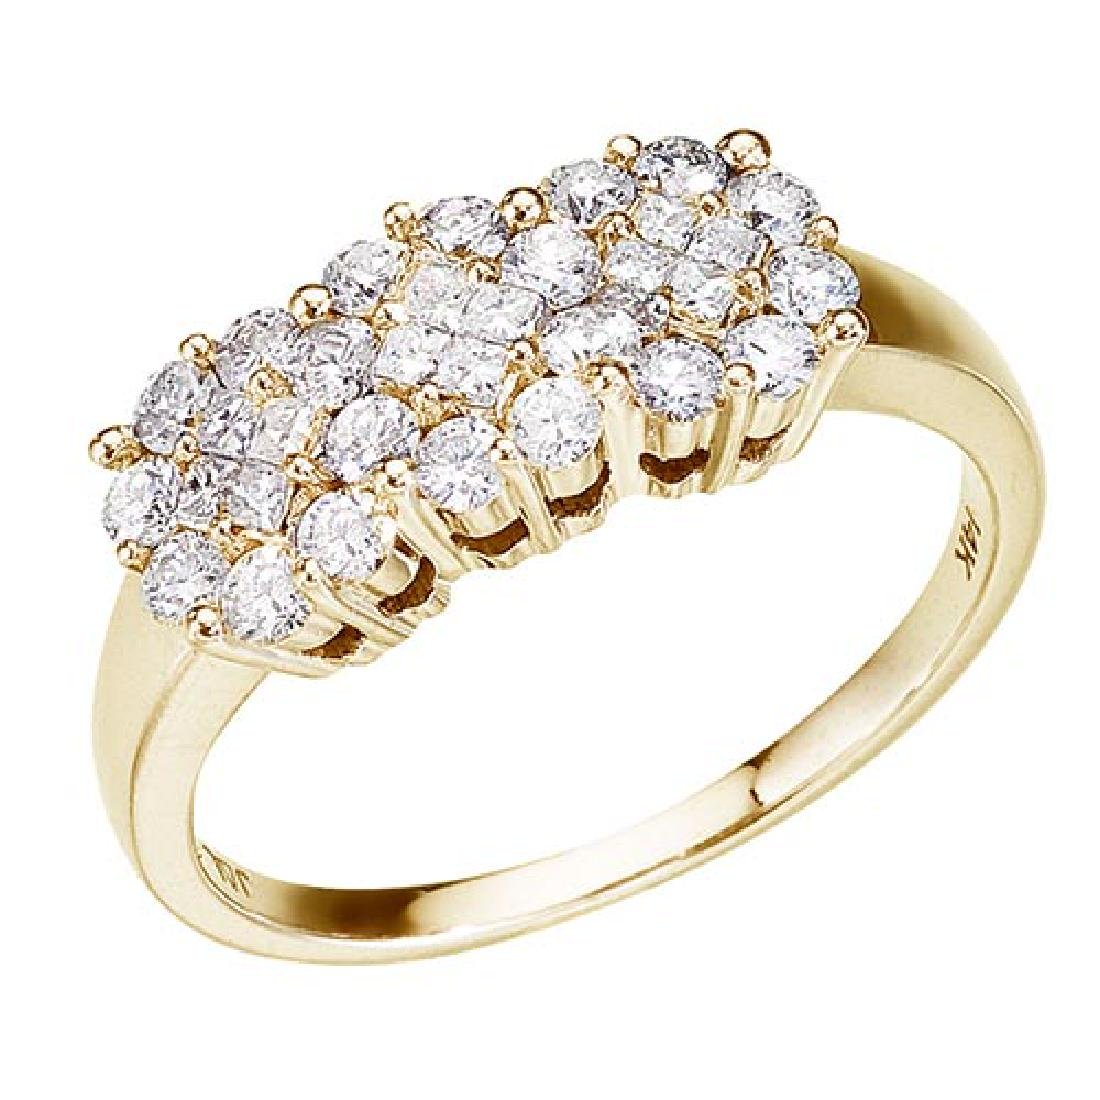 Certified 14K Yellow Gold .75 Ct Diamond Cluster Ring 0